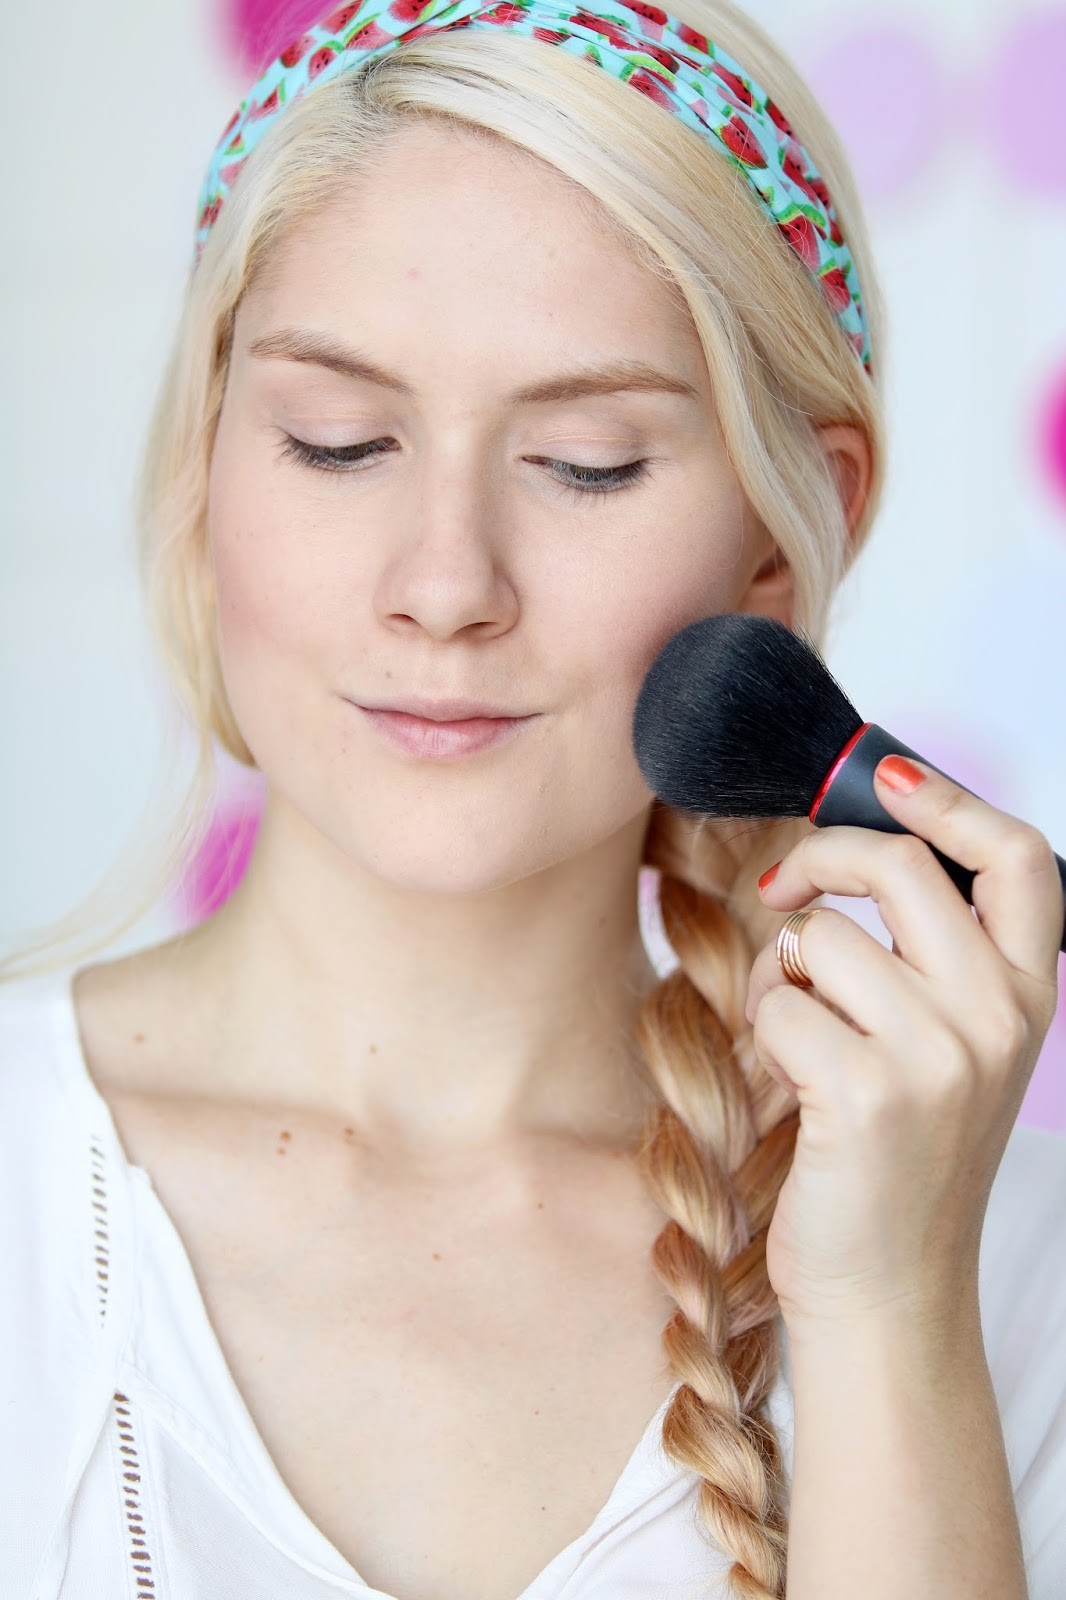 Click through for the full tutorial on this bright Summer makeup!